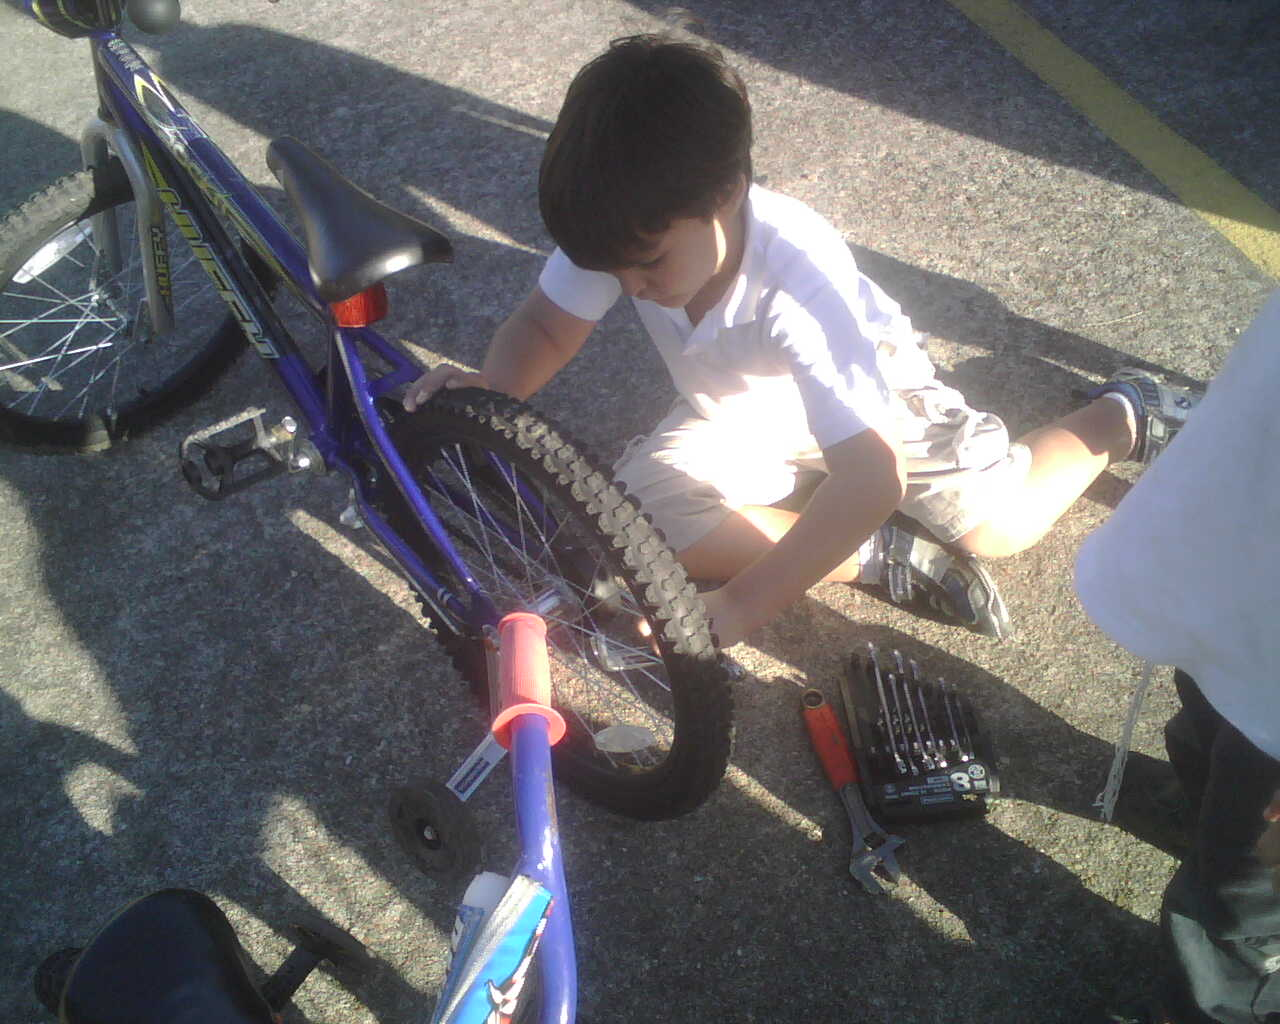 My son working on his bike.